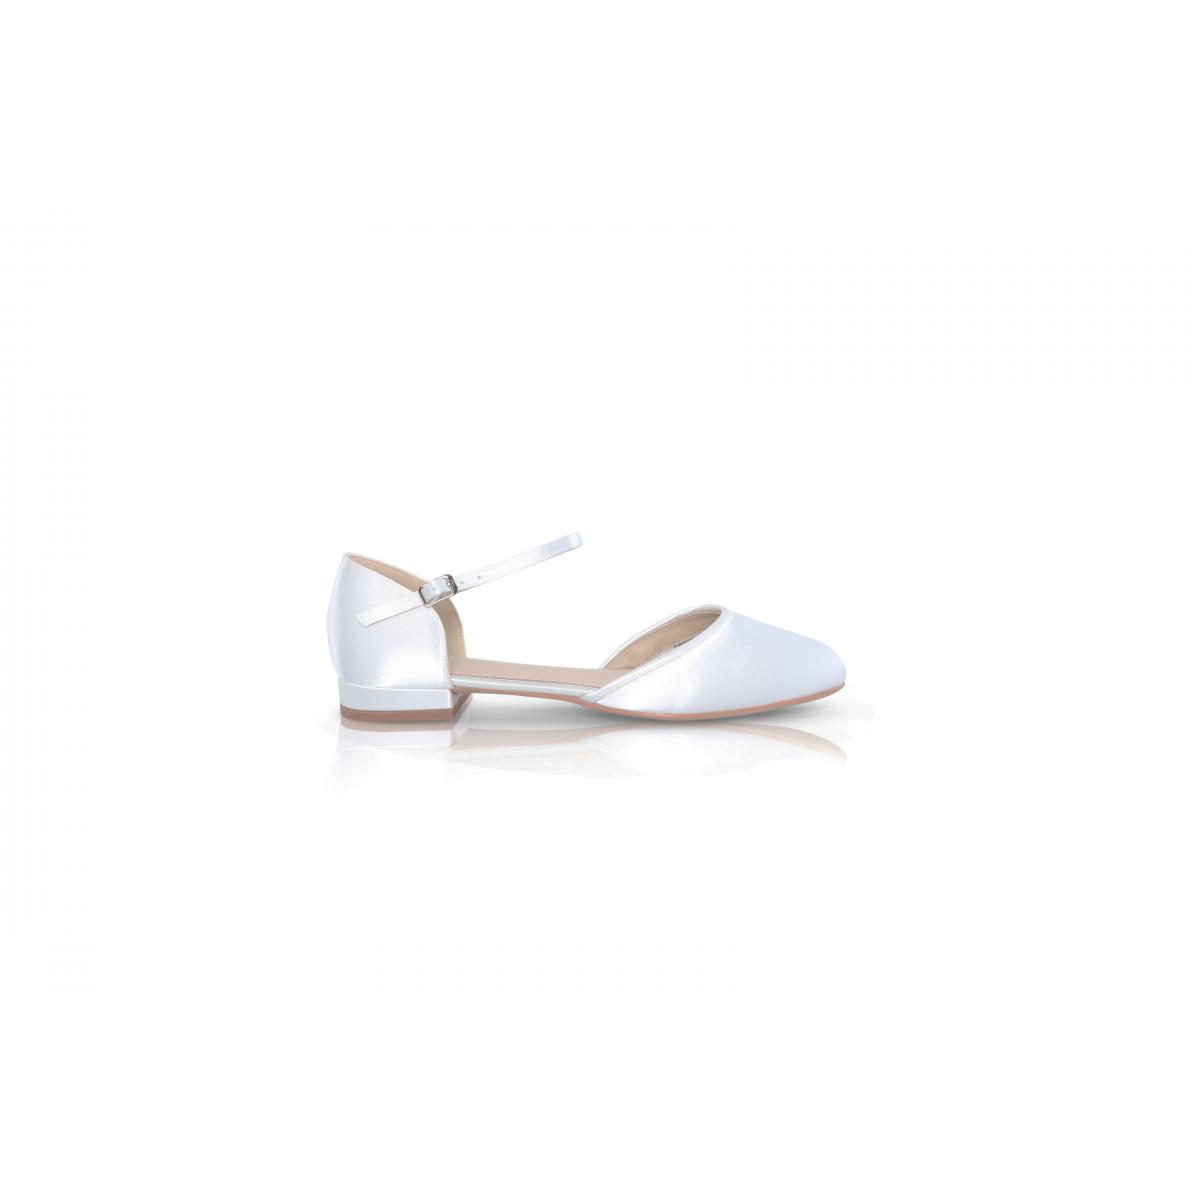 Perfect Bridal Verity Shoes - Ivory Satin 1